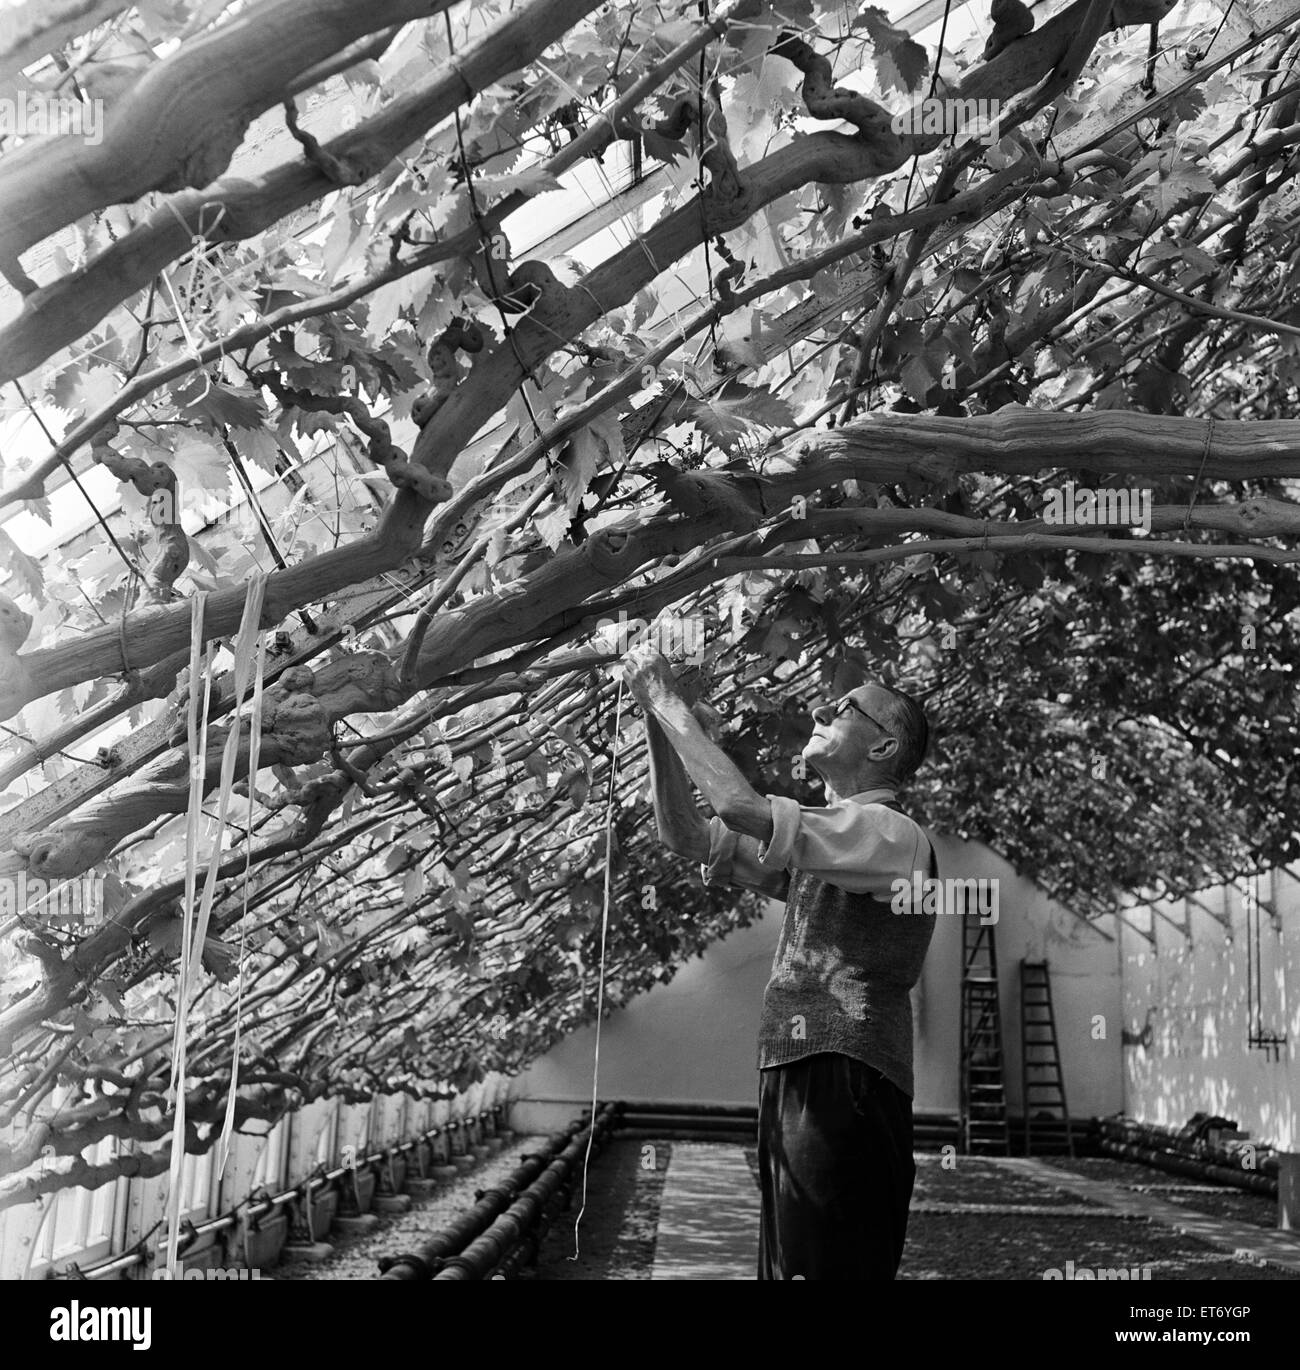 600 bunches of grapes are growing on the great vine at Hampton Court Palace, London (formerly Middlesex). This historic - Stock Image